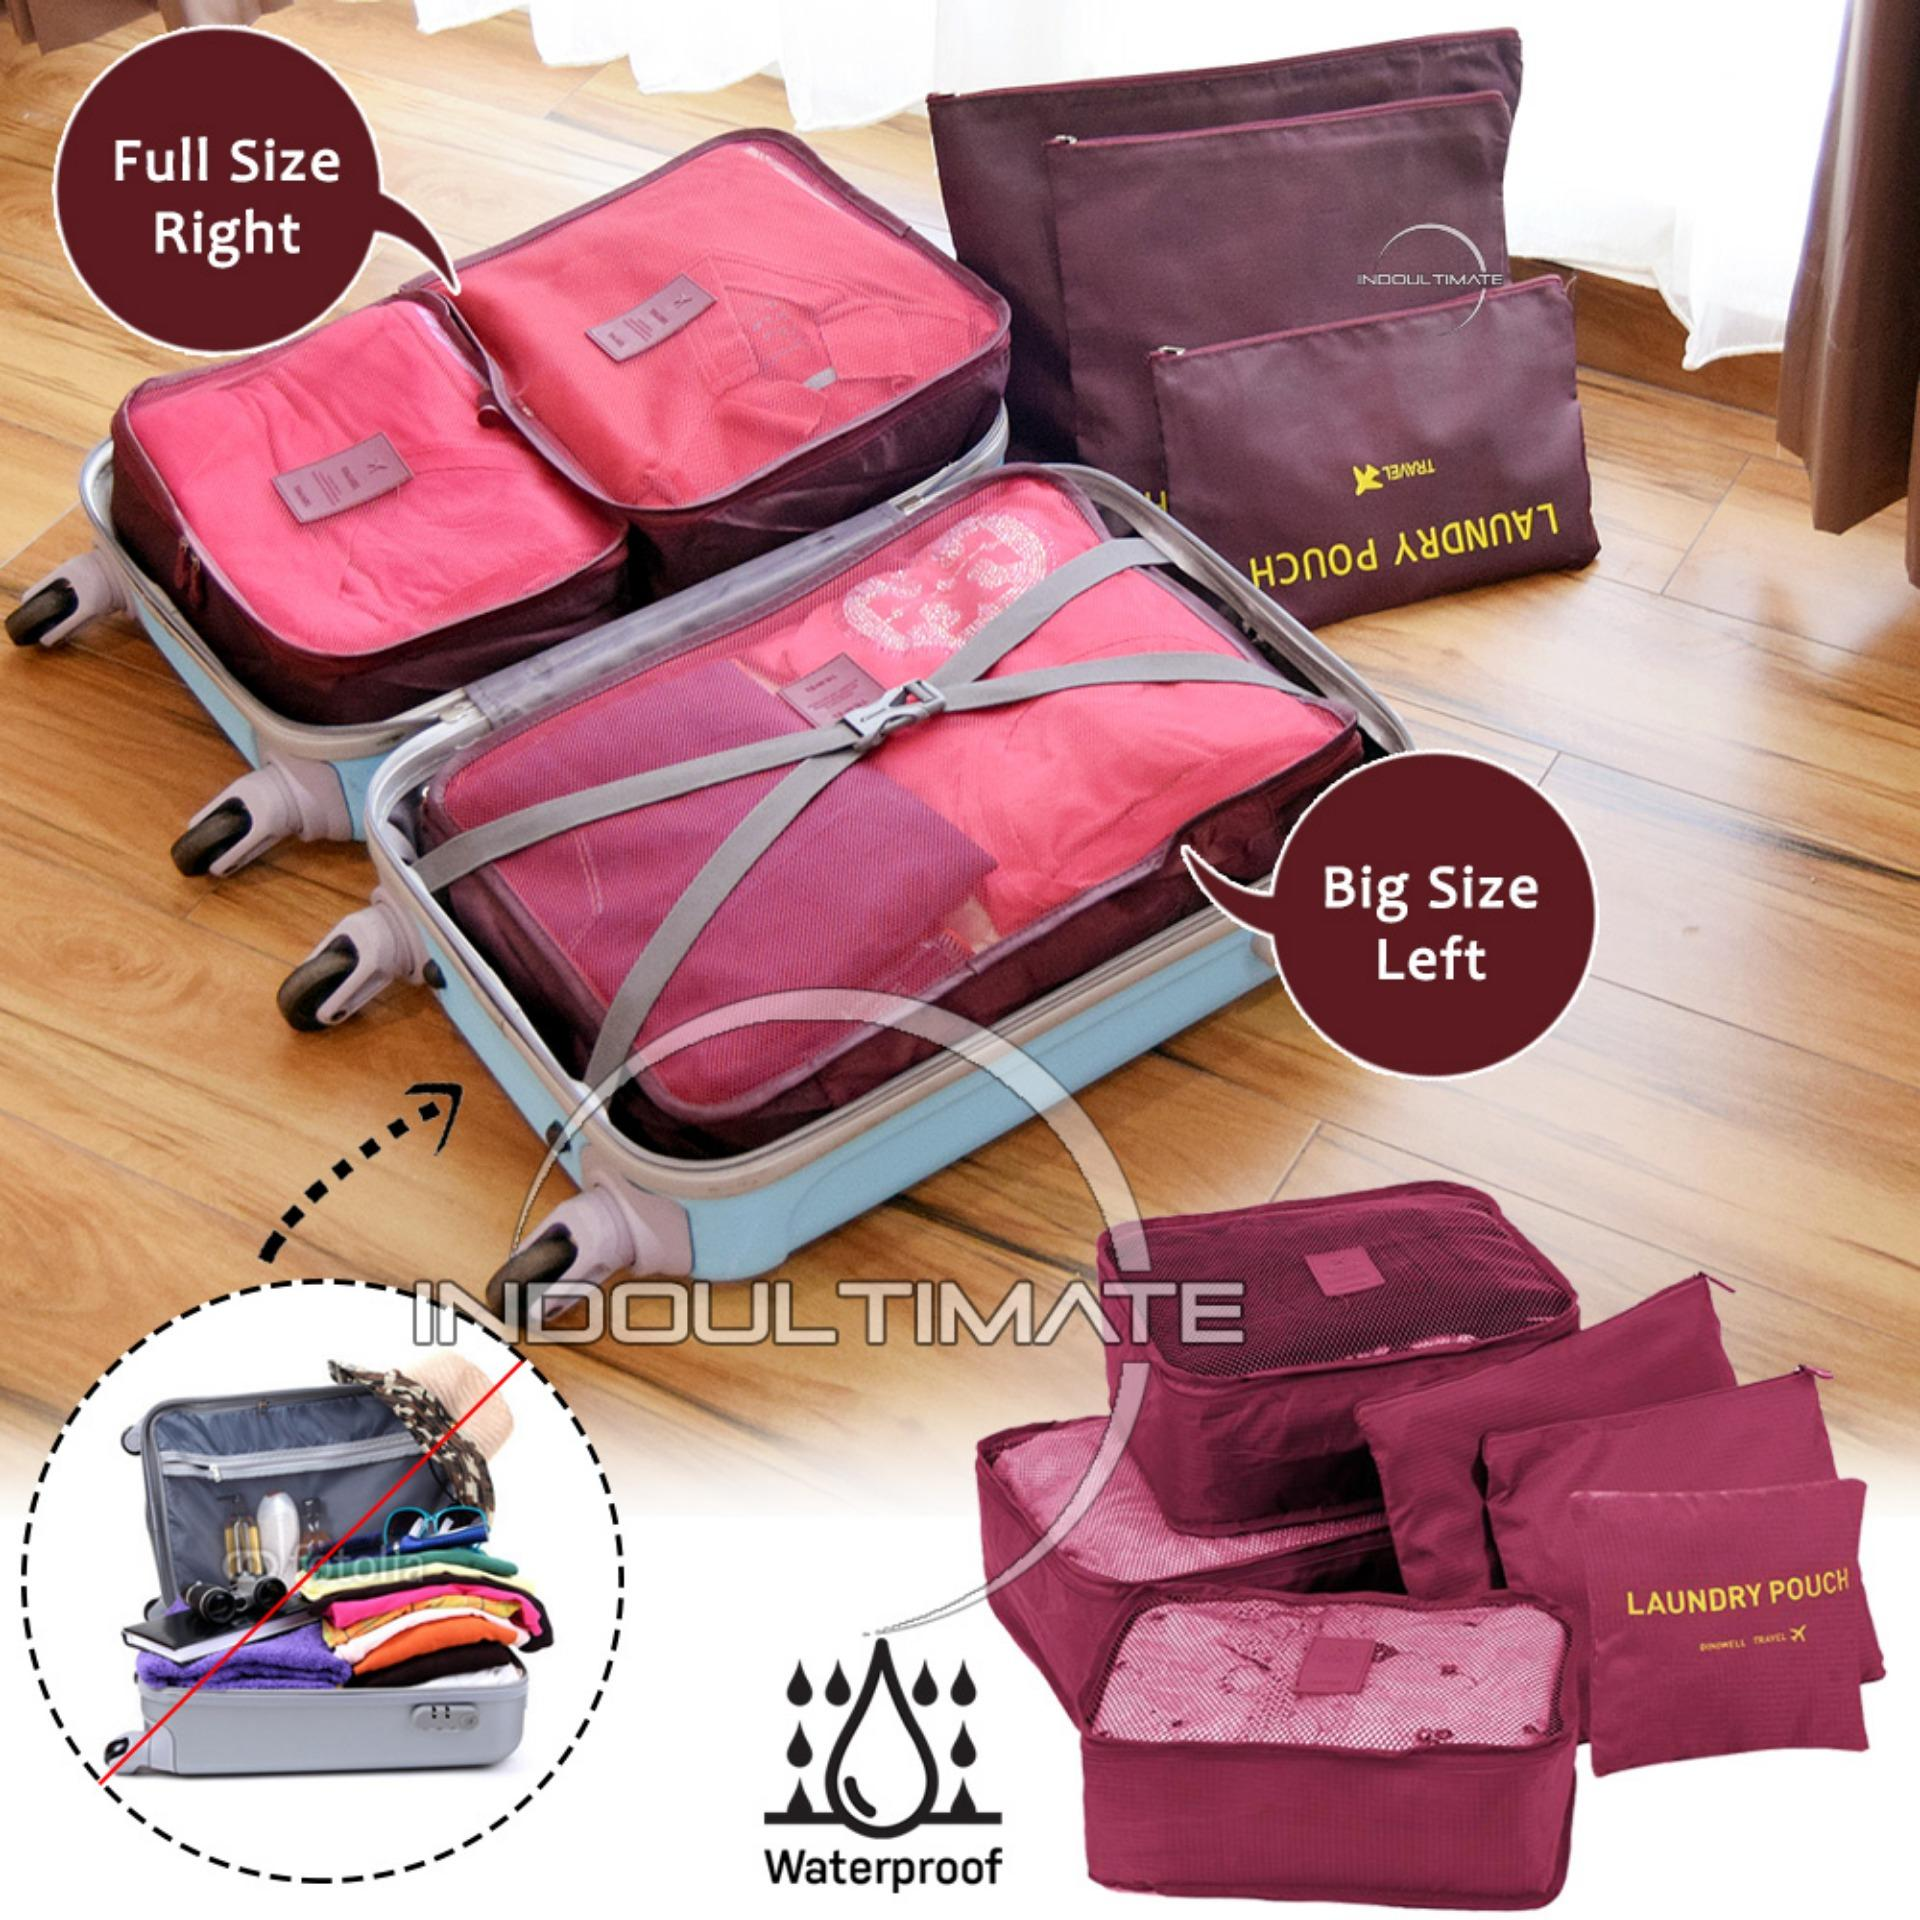 ... TRAVEL BAG /HAND CARRY TAS LIPAT / KOPER LUGGAGE ORGANIZER. Source · Buy & Sell Cheapest LYNX TAS KOPER Best Quality Product Deals Source · BIG SIZE ...